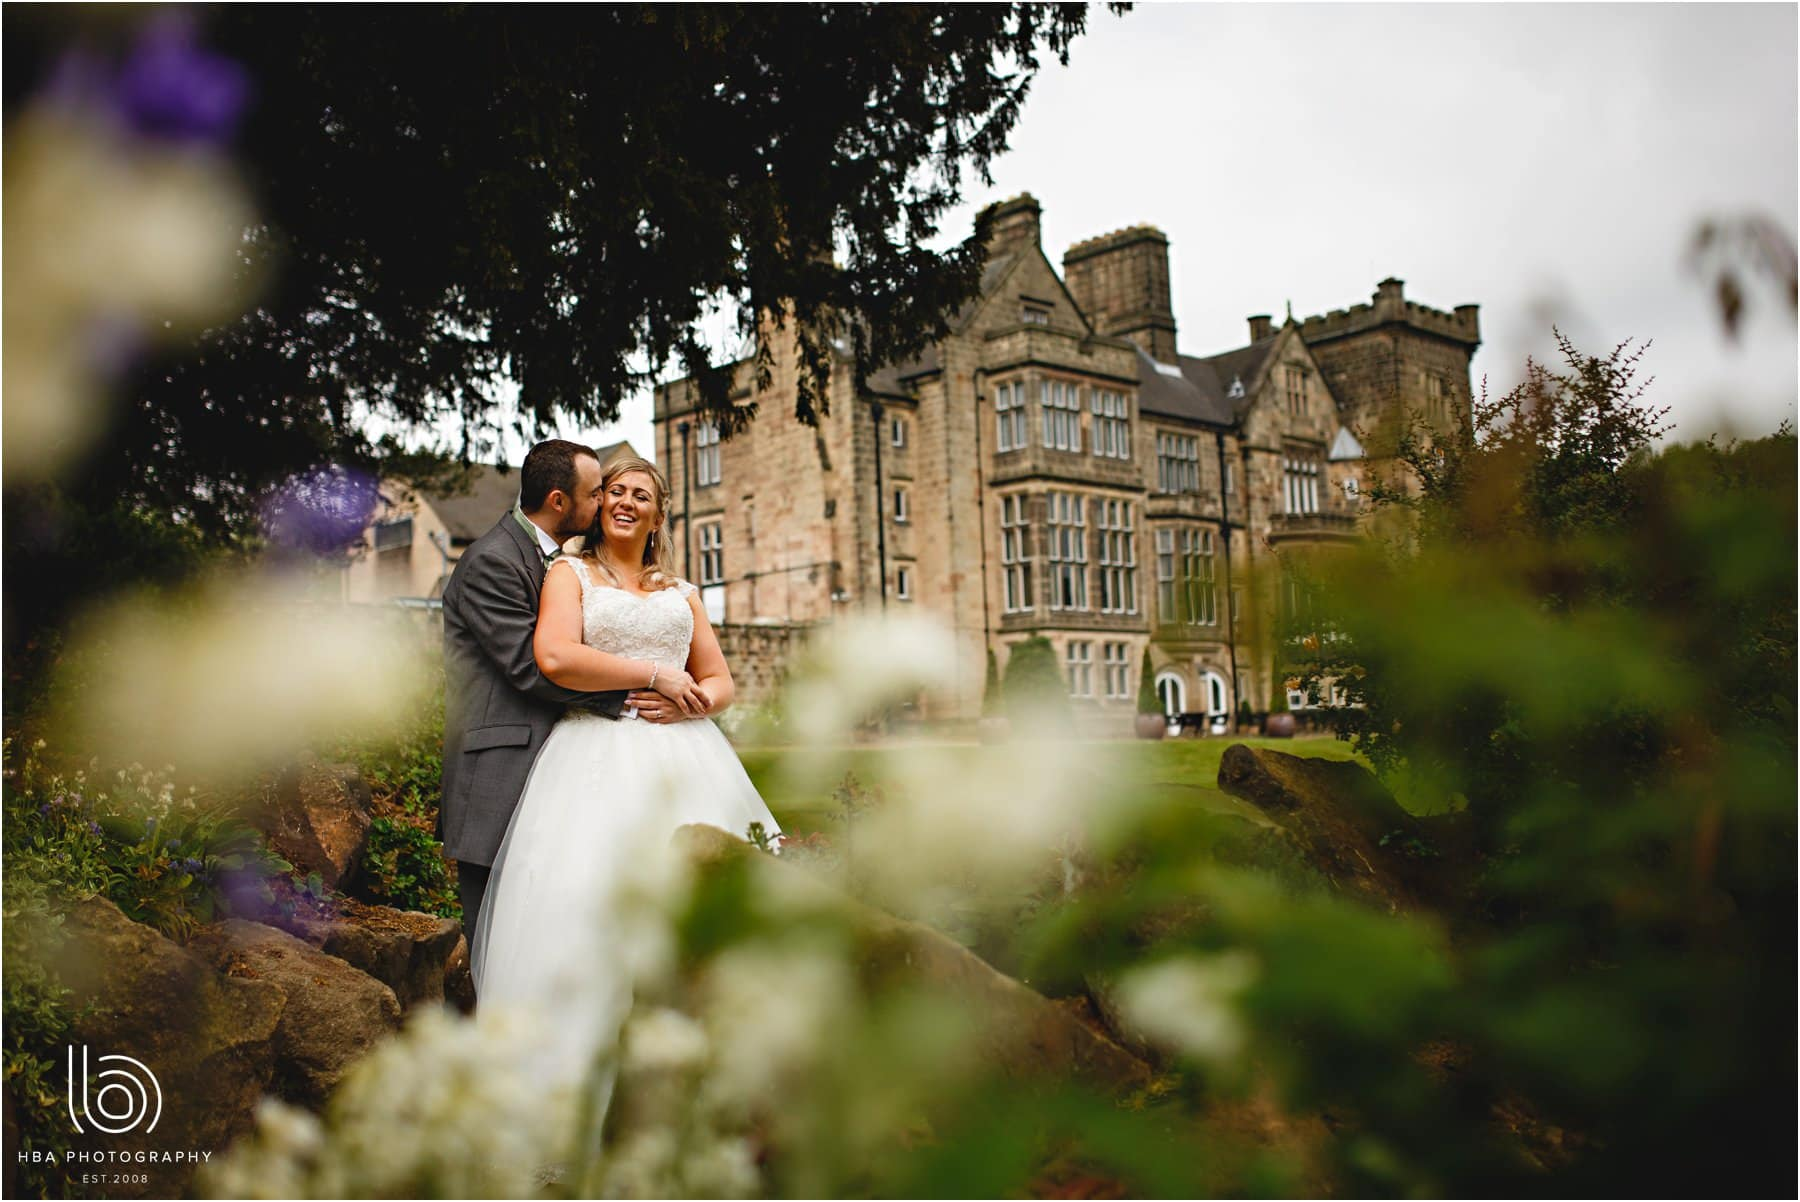 the bride and groom infront of Breadsall priory